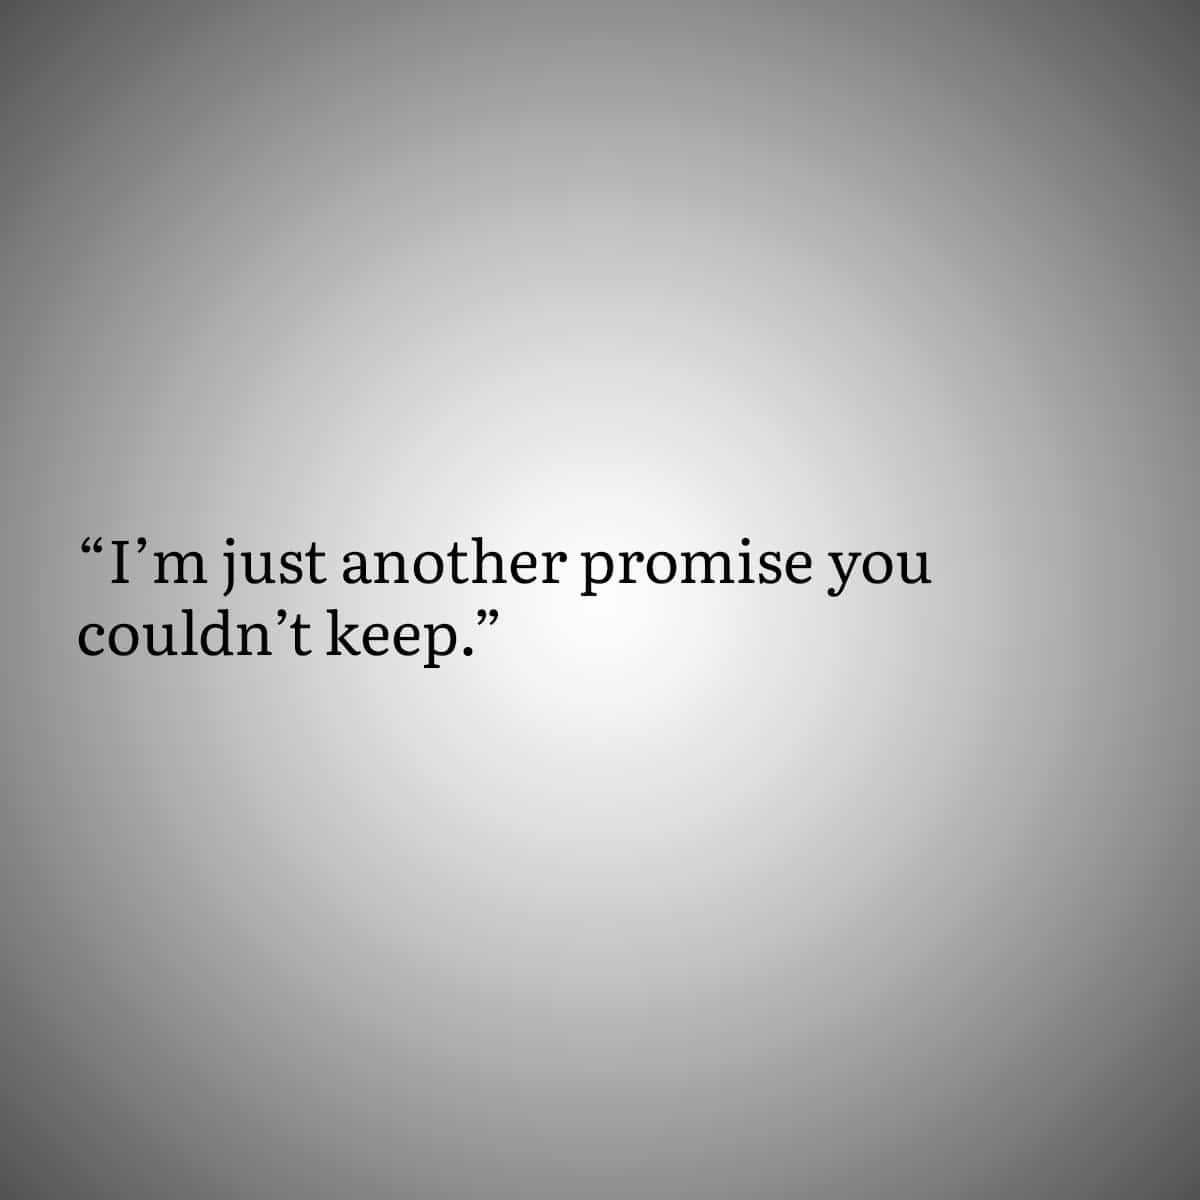 Broken Heart Quote 4: I'm just another promise you couldn't keep.